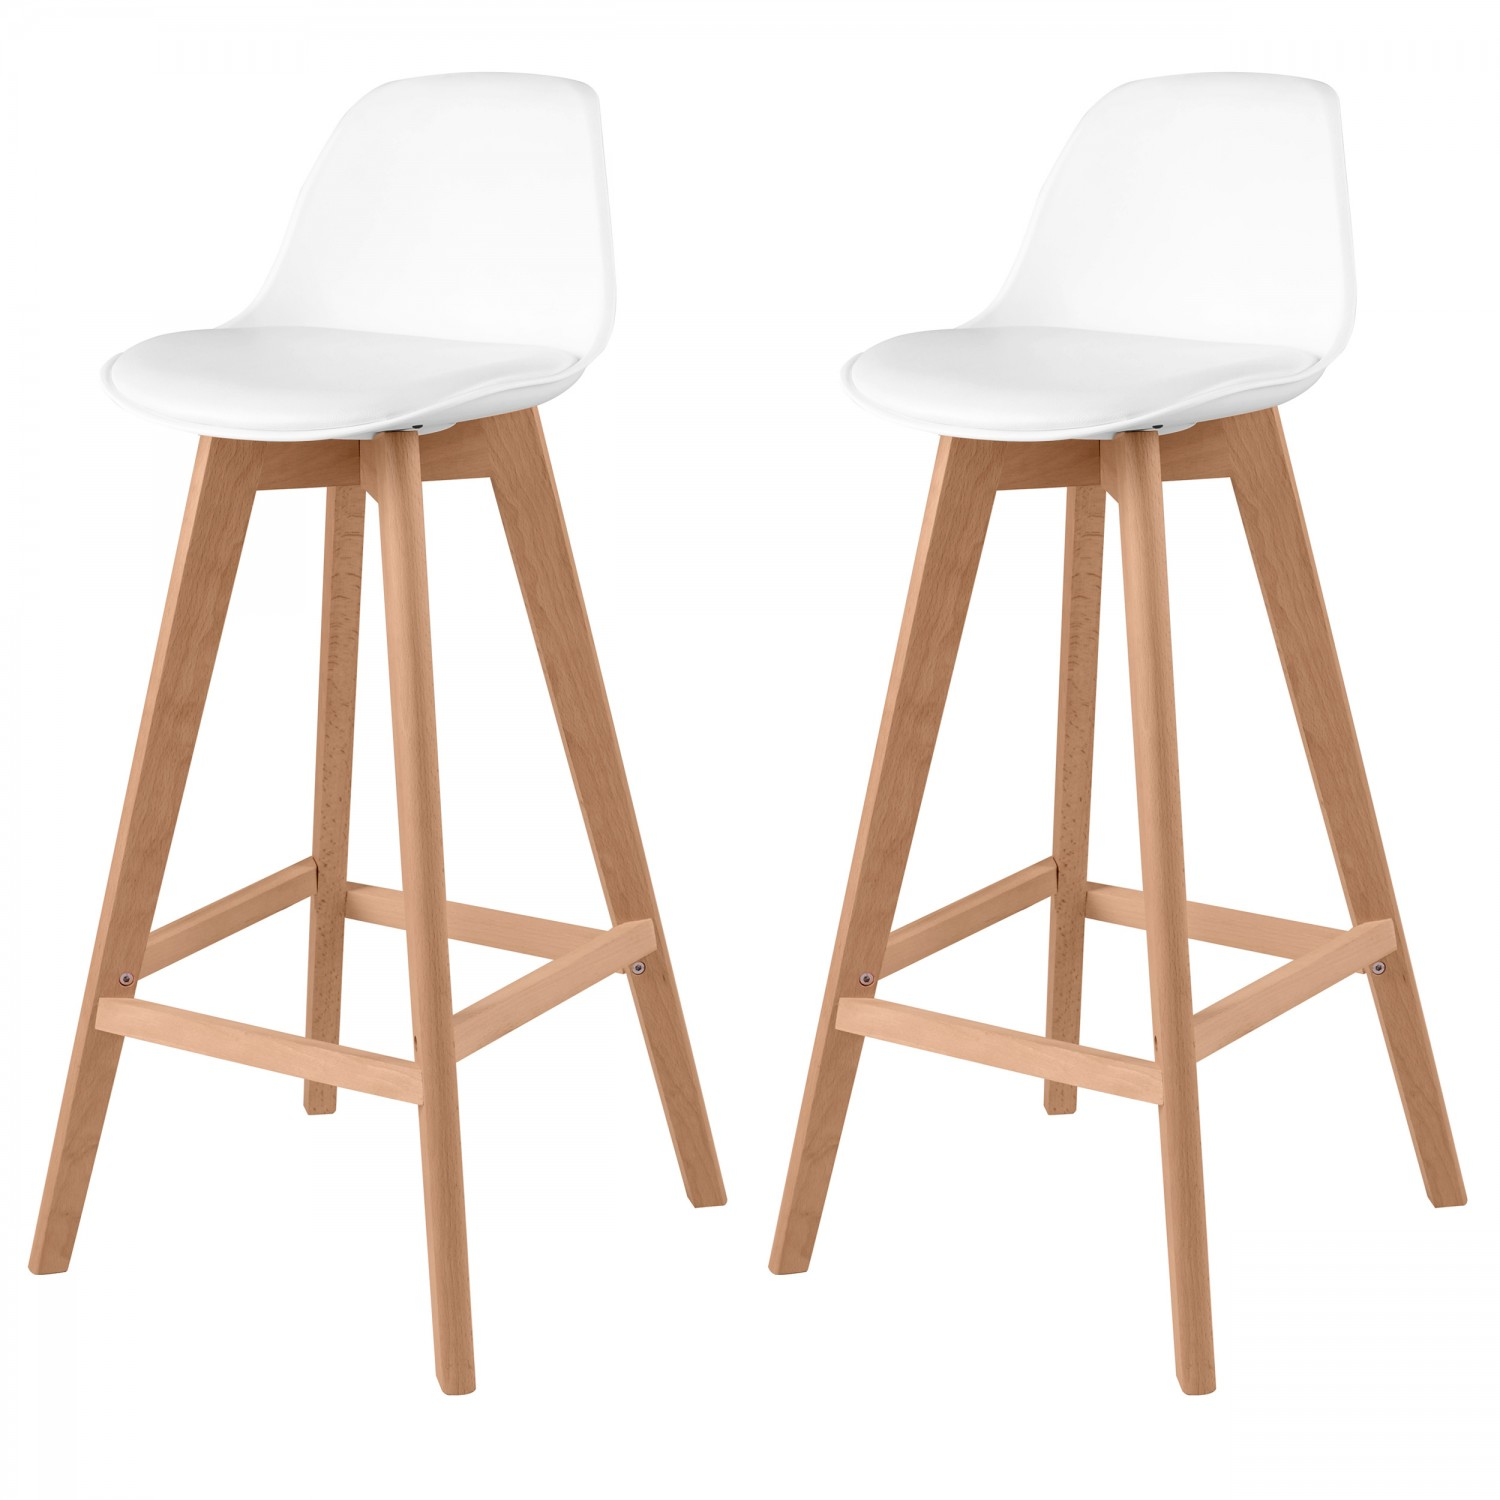 Tabouret De Bar Scandinave Tabouret De Bar Scandinave Blanc Lot De 2 Koya Design